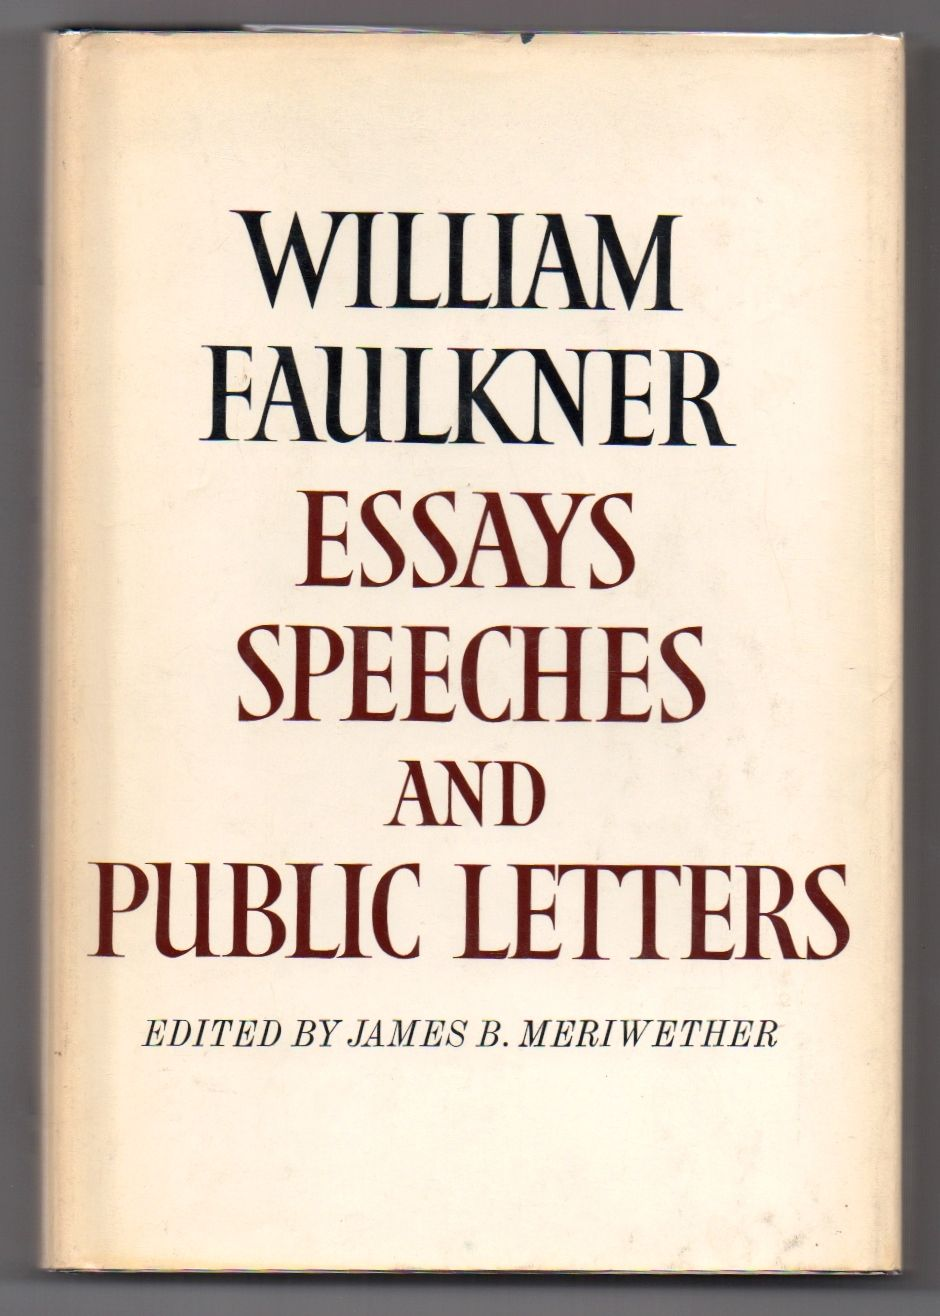 essays speeches and public letters by william faulkner William faulkner was born in mississippi in 1897 a legend of american letters, he is the author of the sound and the fury, absalom, absalom, as i lay dying , and many other works.